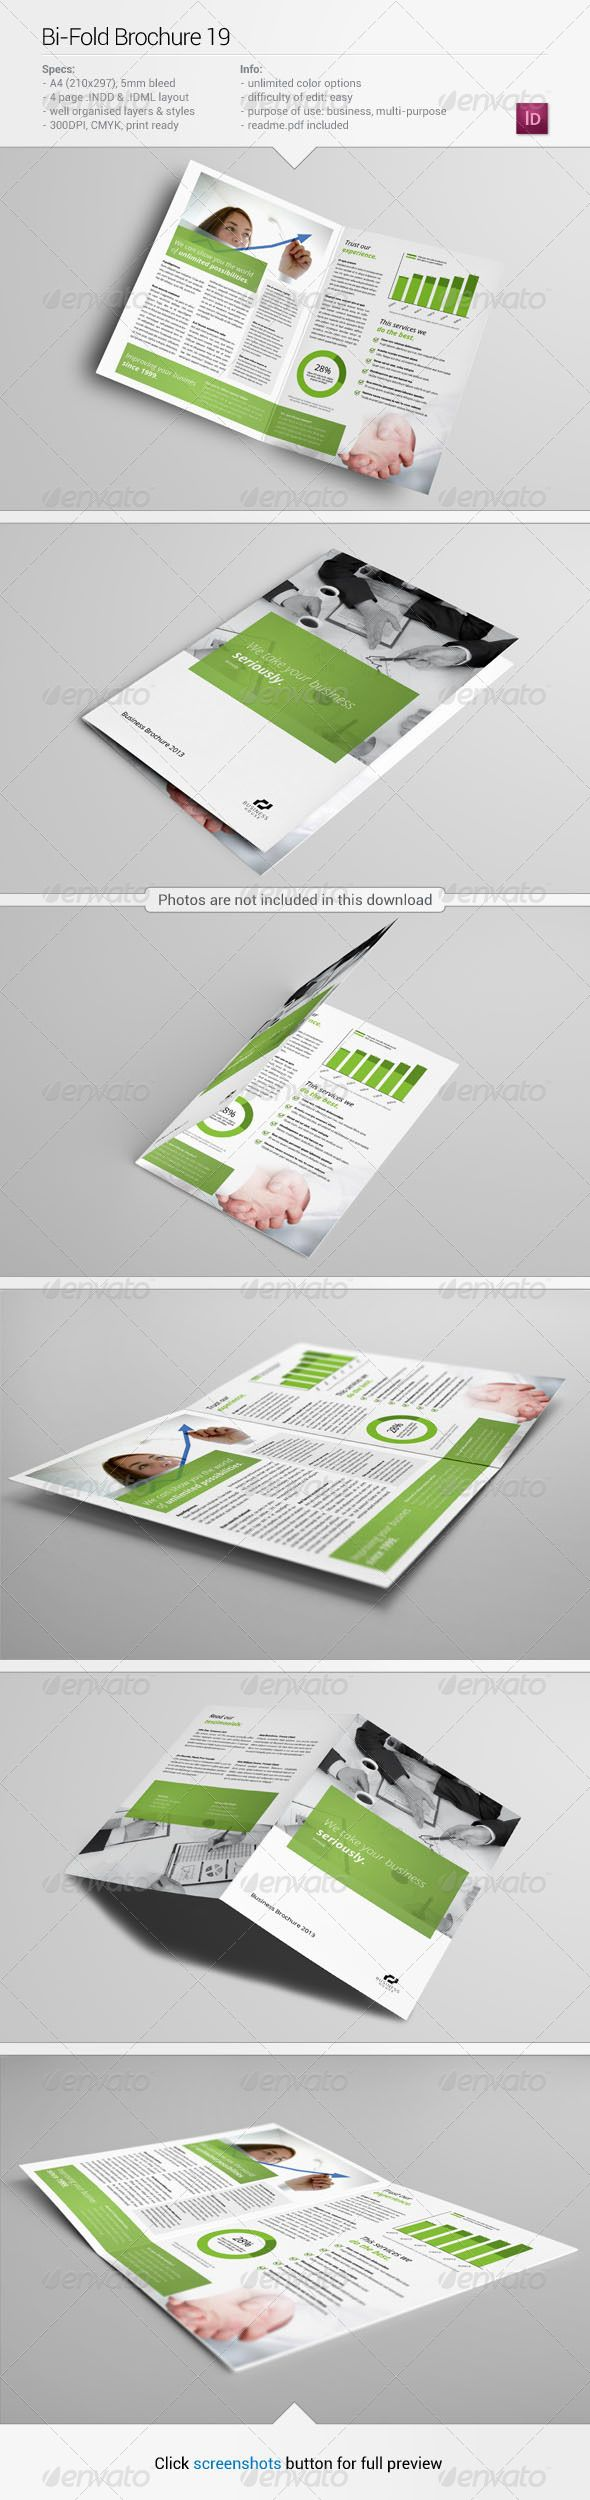 BiFold Brochure 19 — InDesign INDD #stock #pamphlet • Available here → https://graphicriver.net/item/bifold-brochure-19/5672916?ref=pxcr